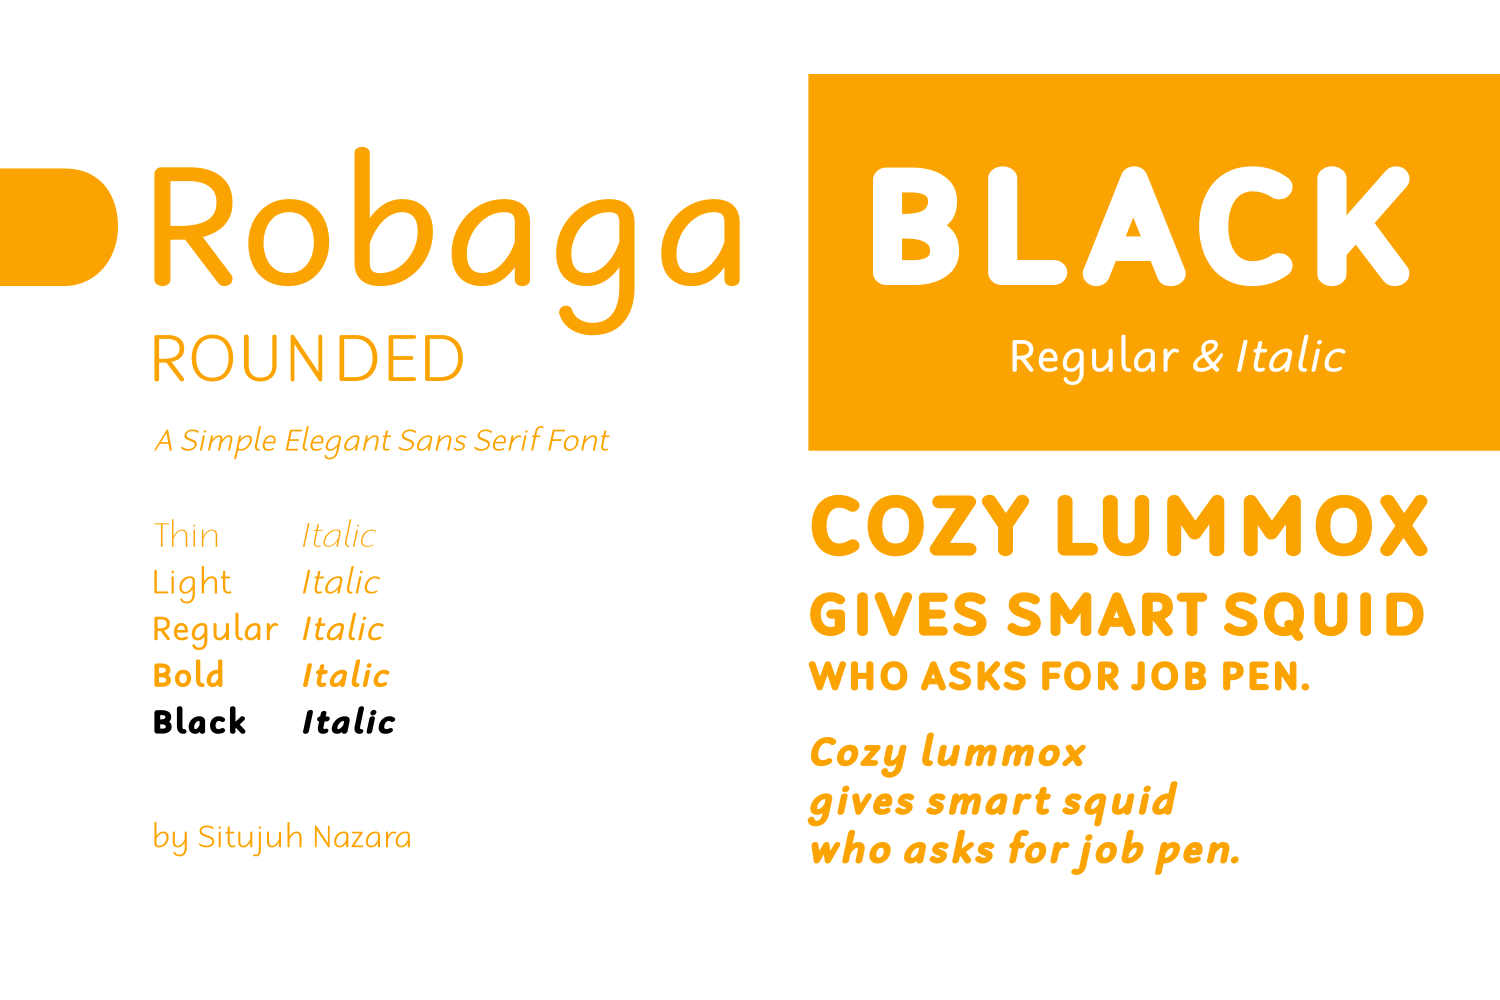 Robaga Rounded Black Sans Serif Font By Situjuh